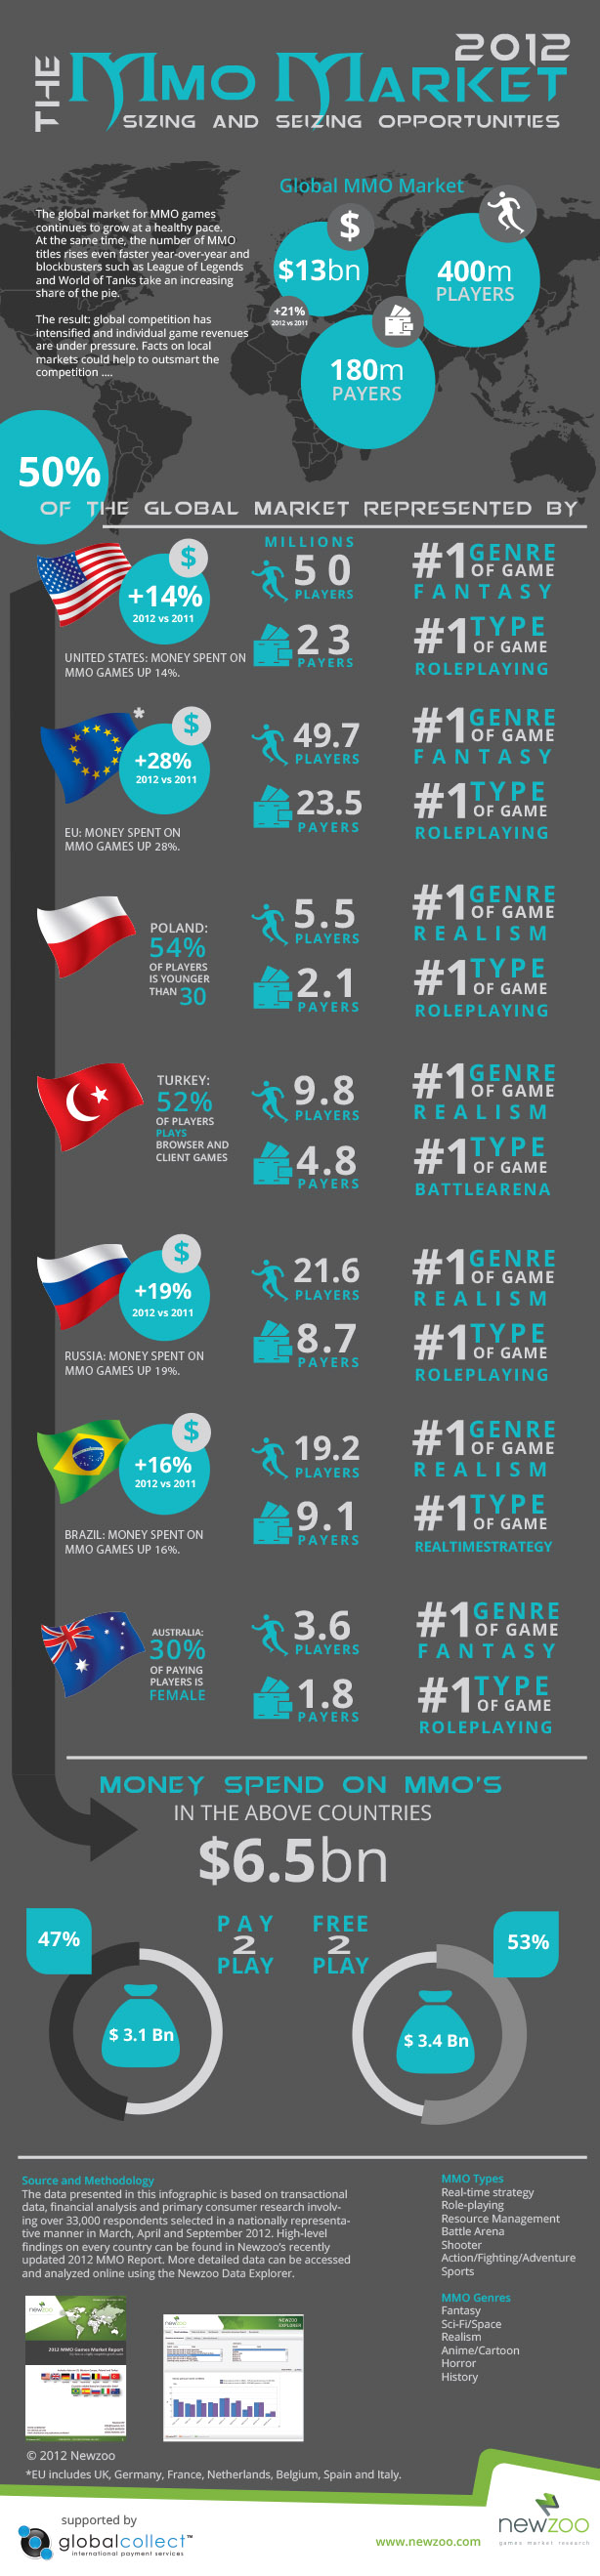 2012 MMO Games Market Report-infographic